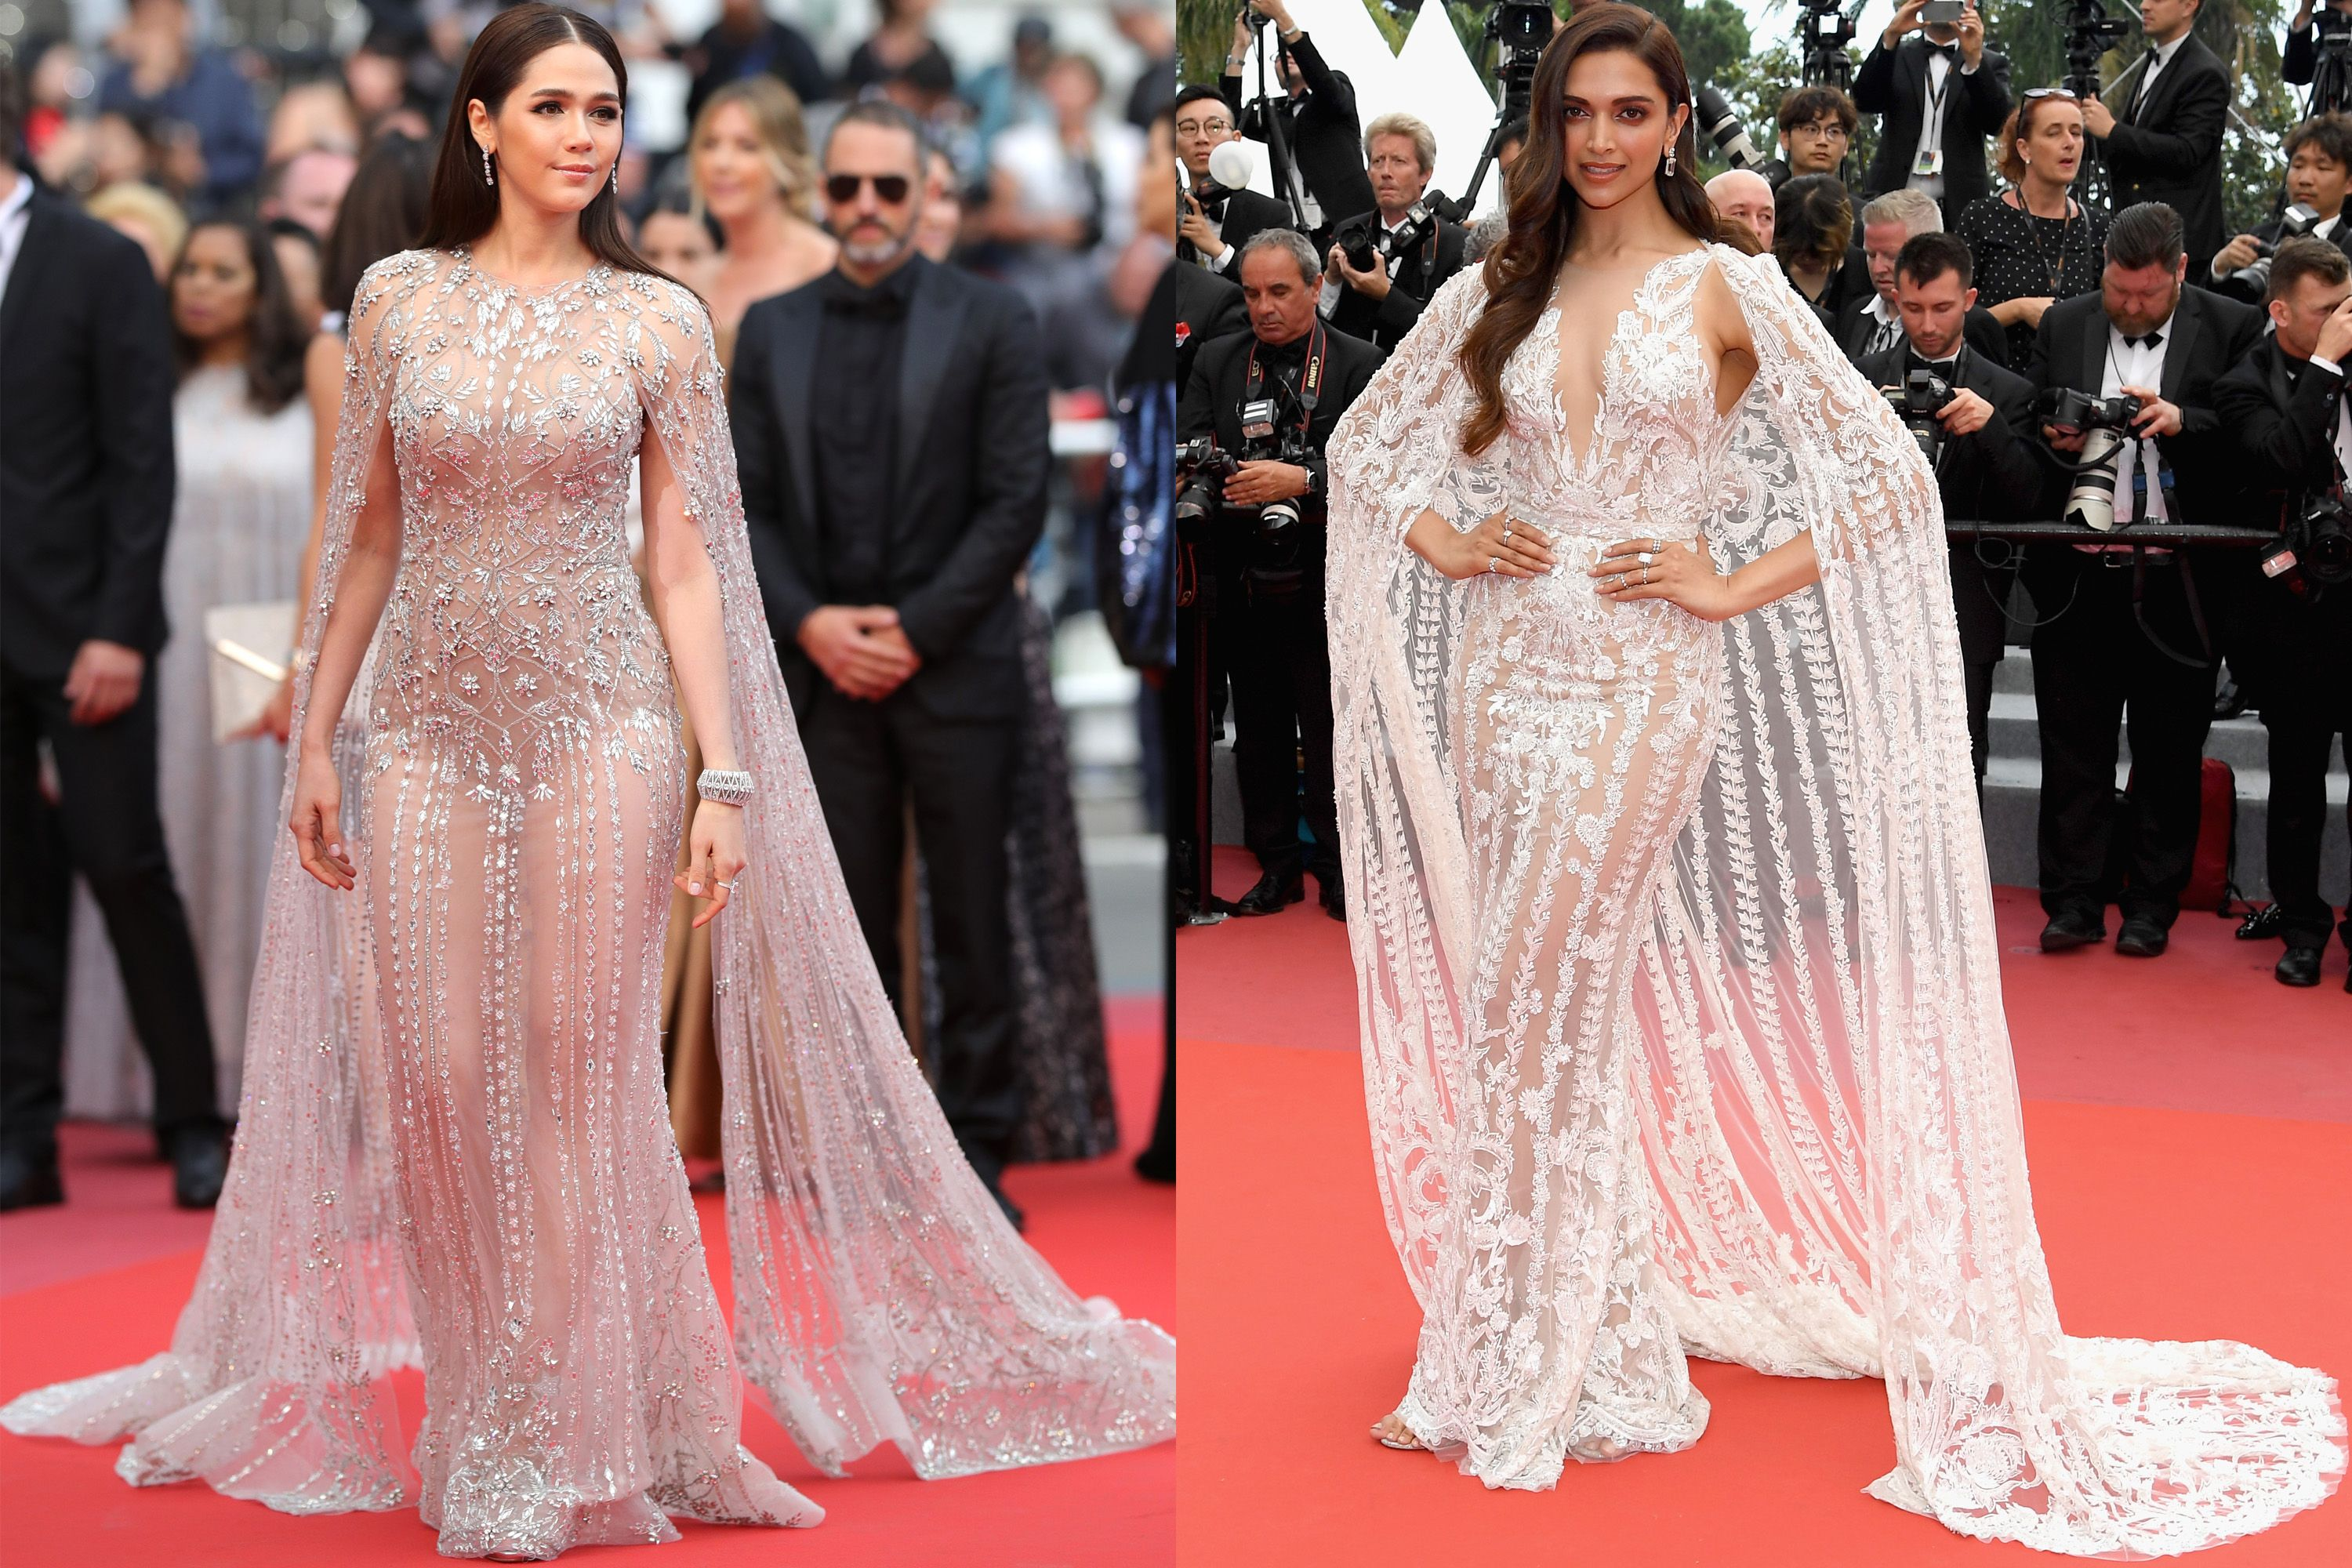 Two Actresses Showed Up In Nearly Identical Sheer Cape Dresses In Cannes